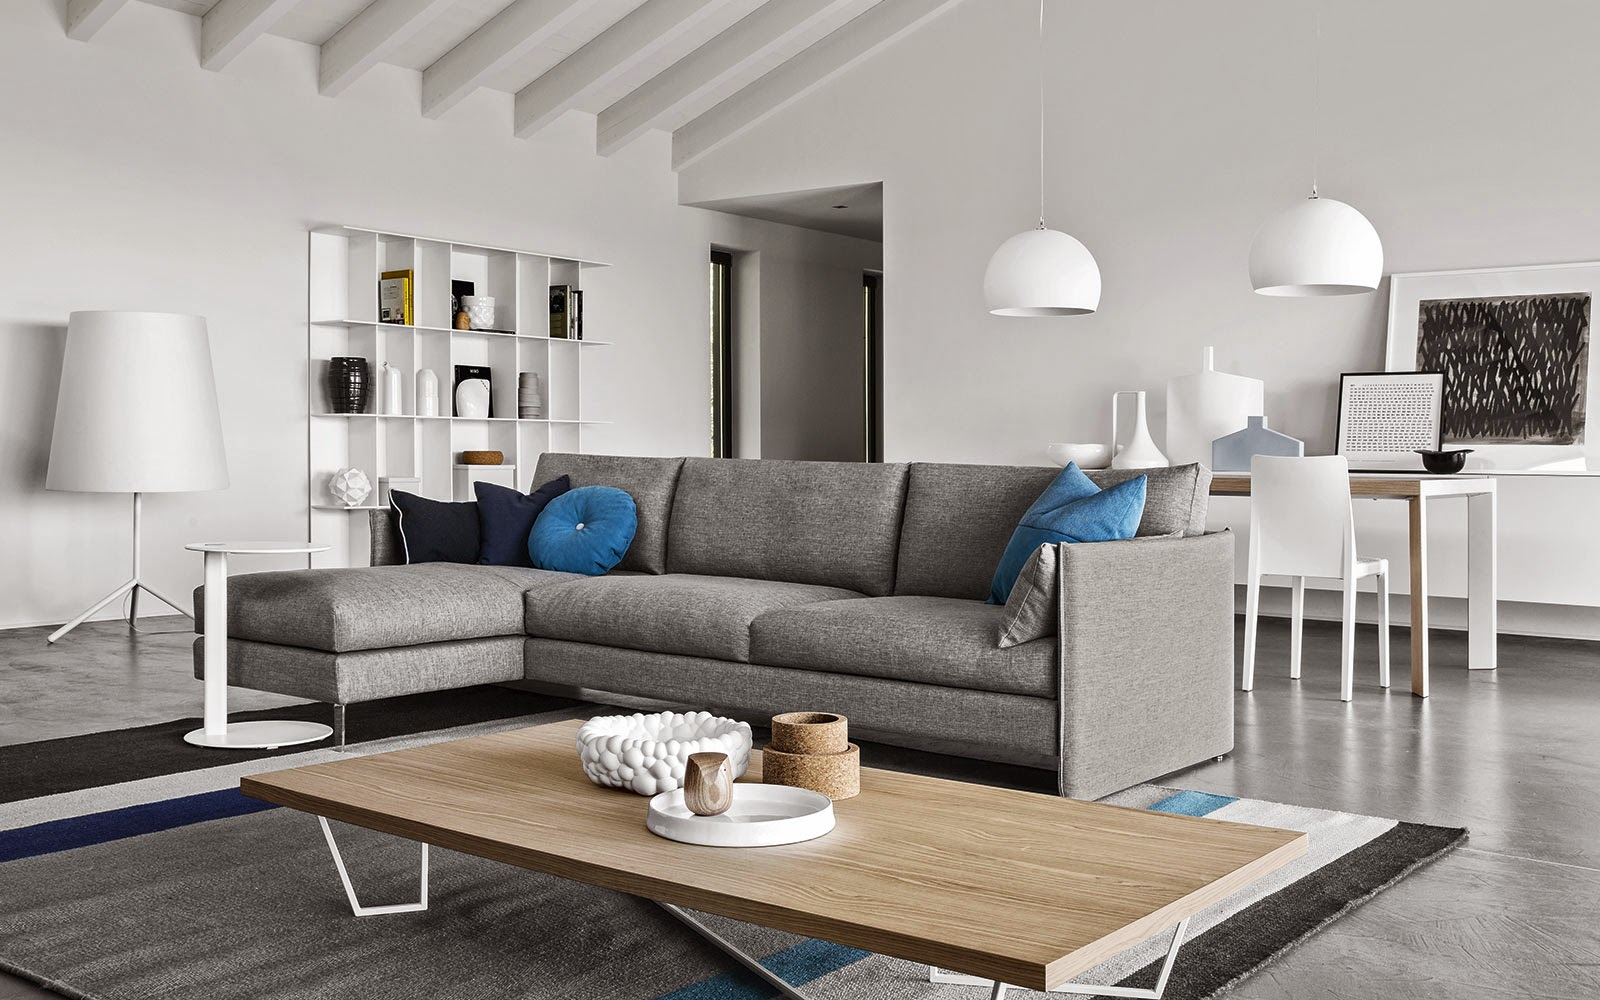 Interior Relooking: Come illuminare la zona living